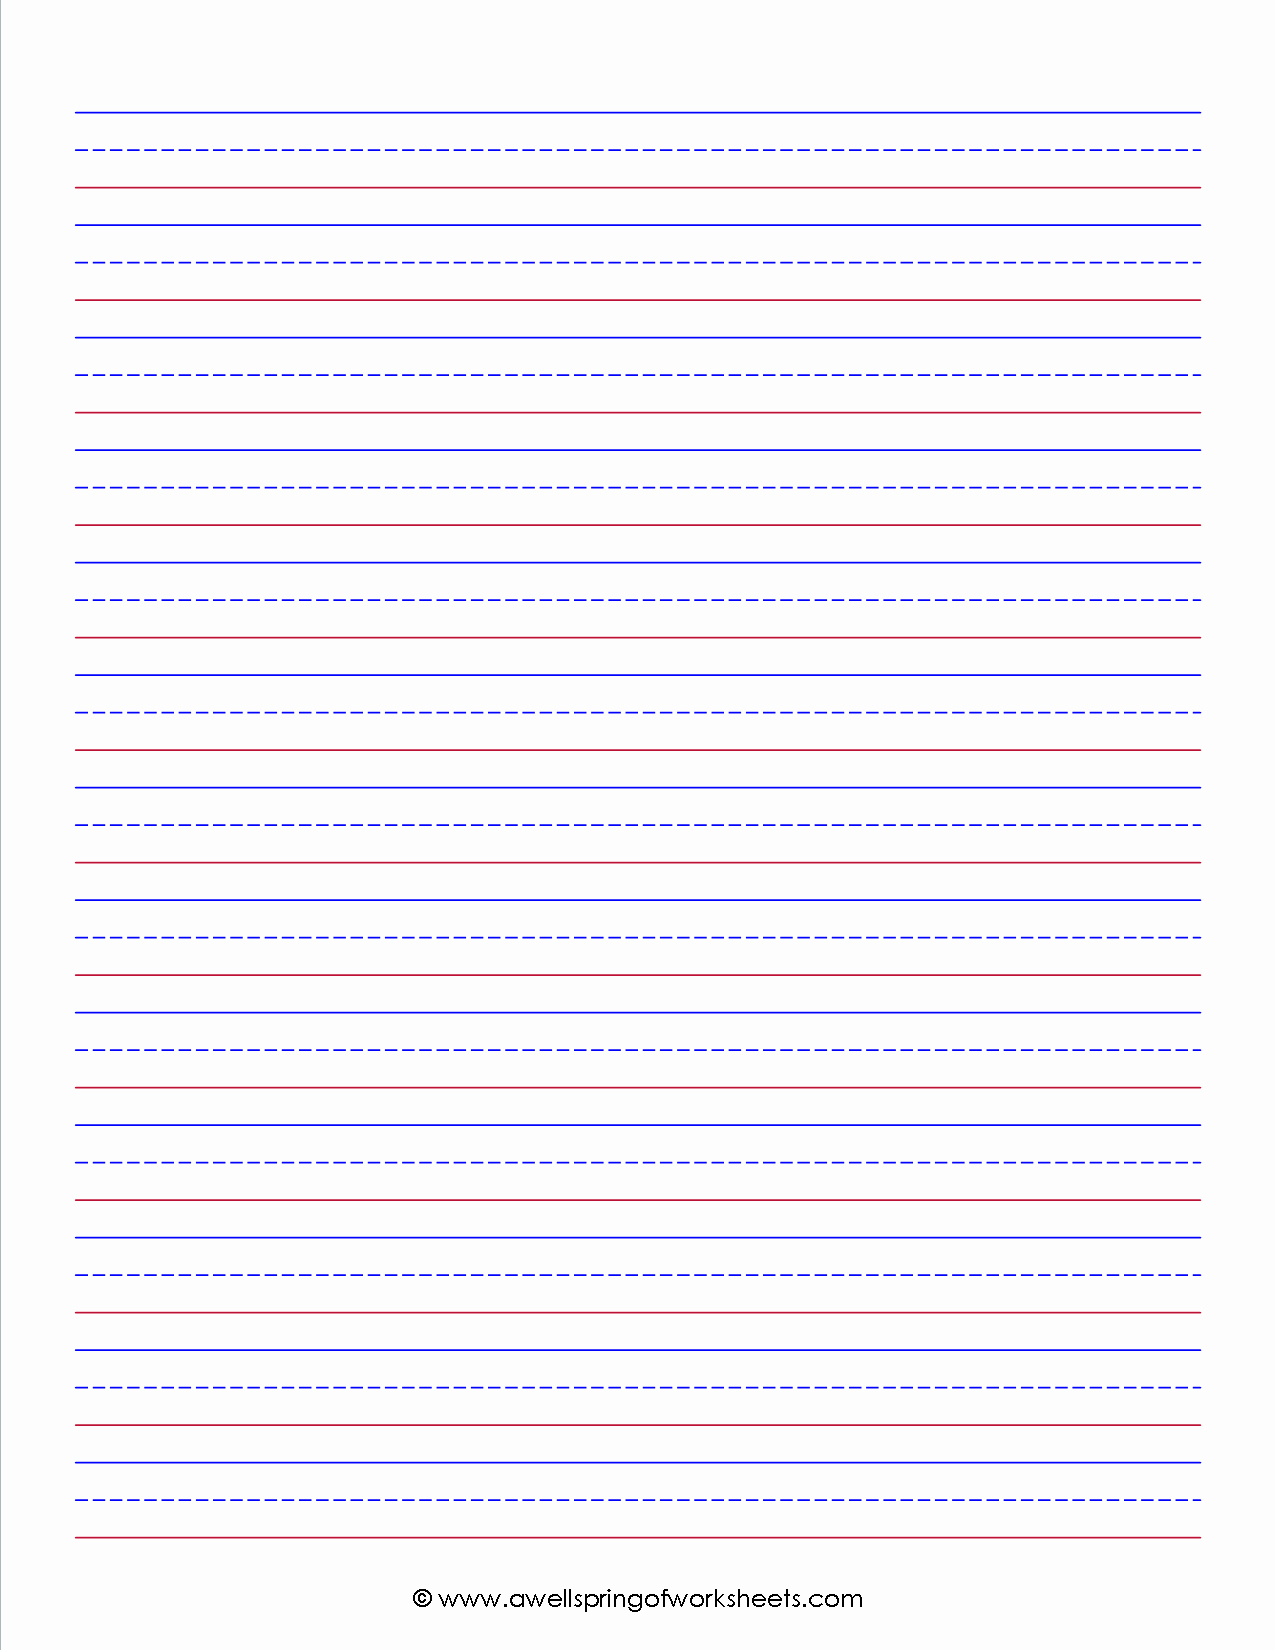 Kindergarten Paper with Lines Elegant Worksheets by Subject Writing